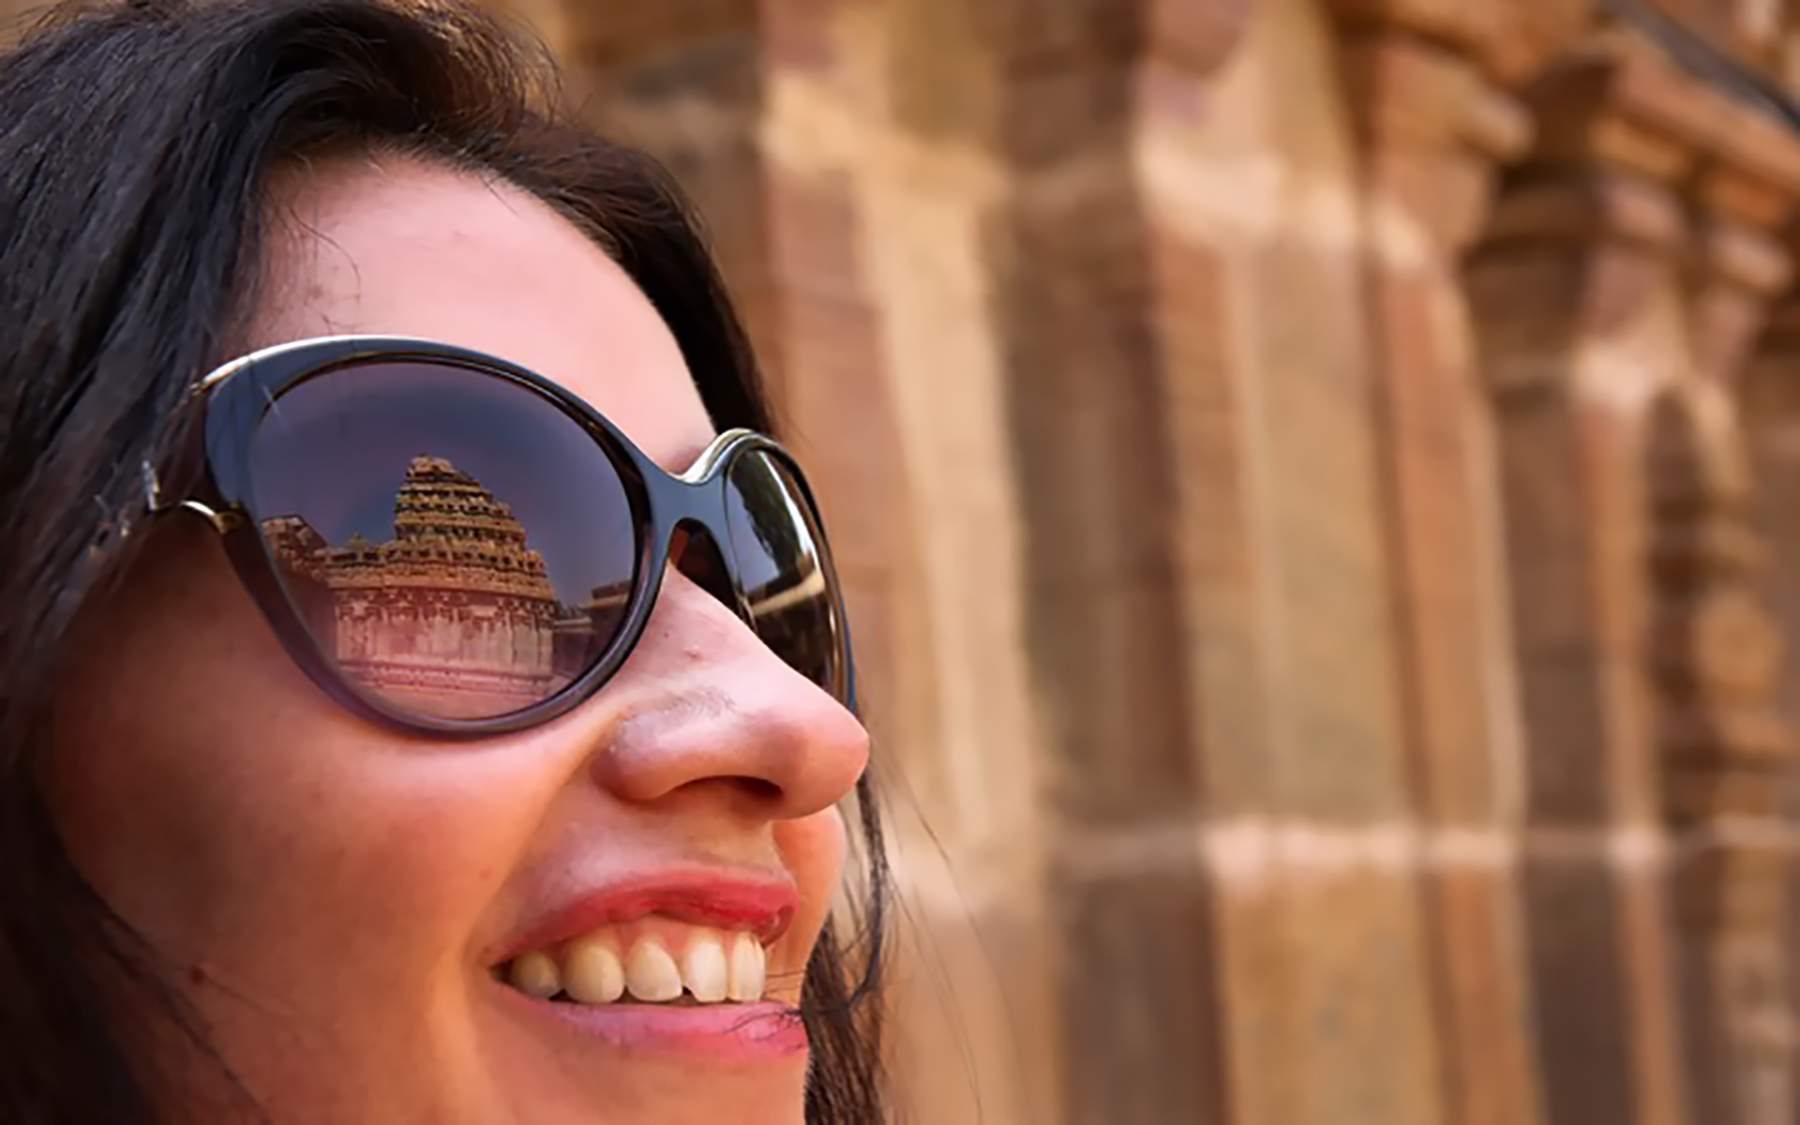 Glorious temple of Bhoganandeeshwara reflected in the eye of an admirer